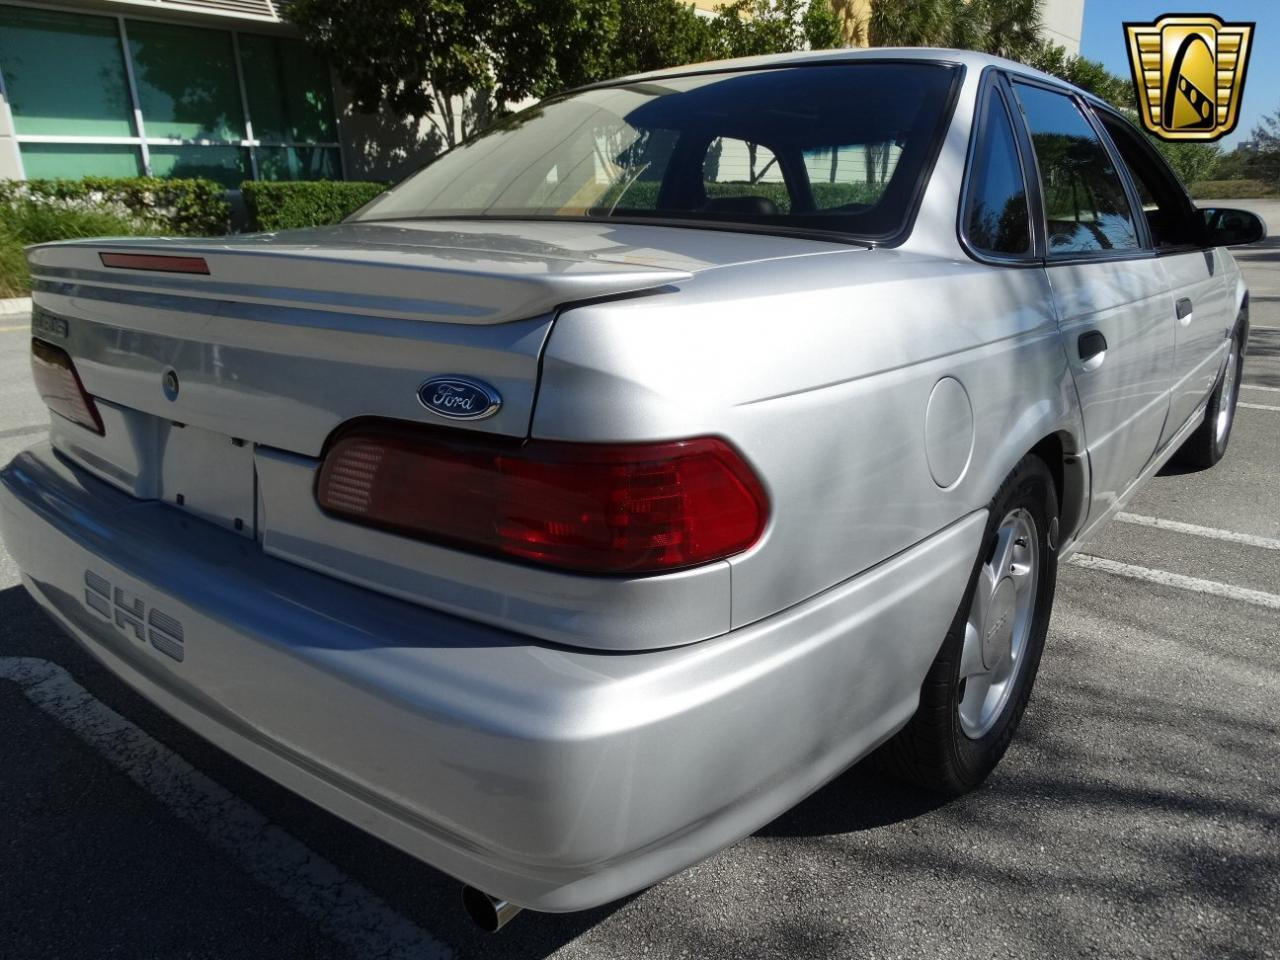 Large Picture of 1993 Ford Taurus located in Florida Offered by Gateway Classic Cars - Fort Lauderdale - KEXL